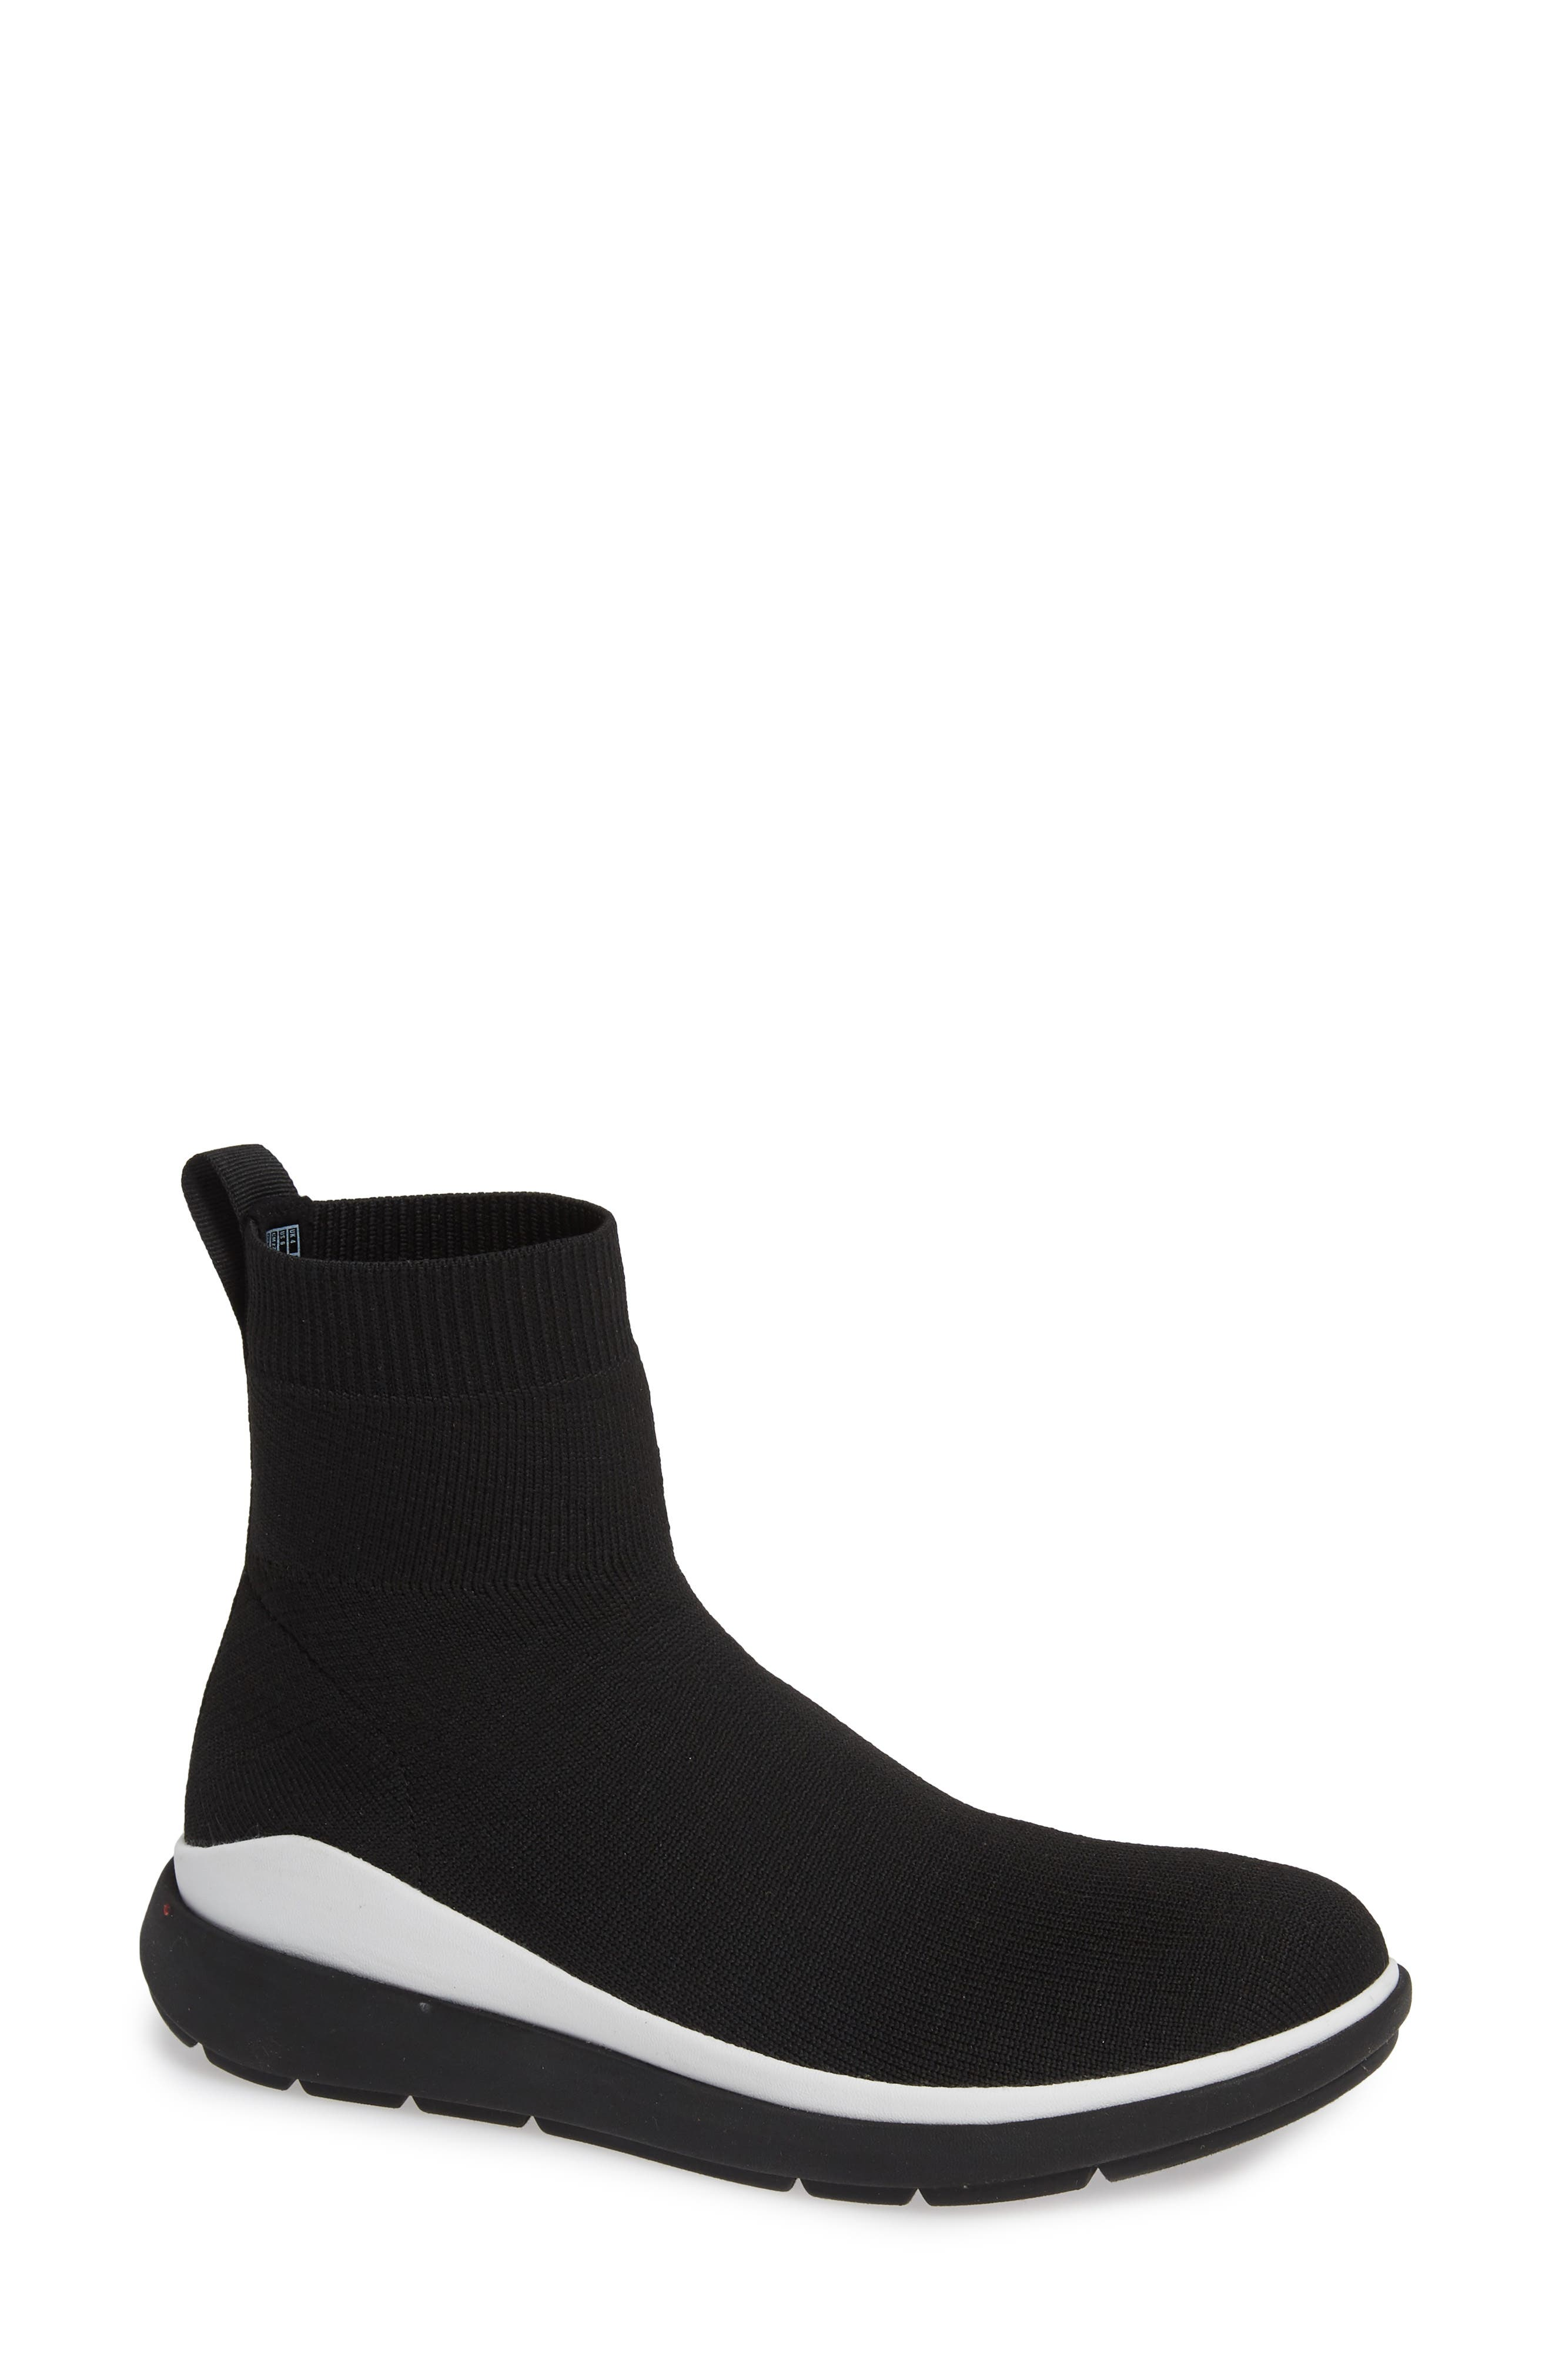 Fitflop Loosh Luxe Rapid Knit Bootie, Black